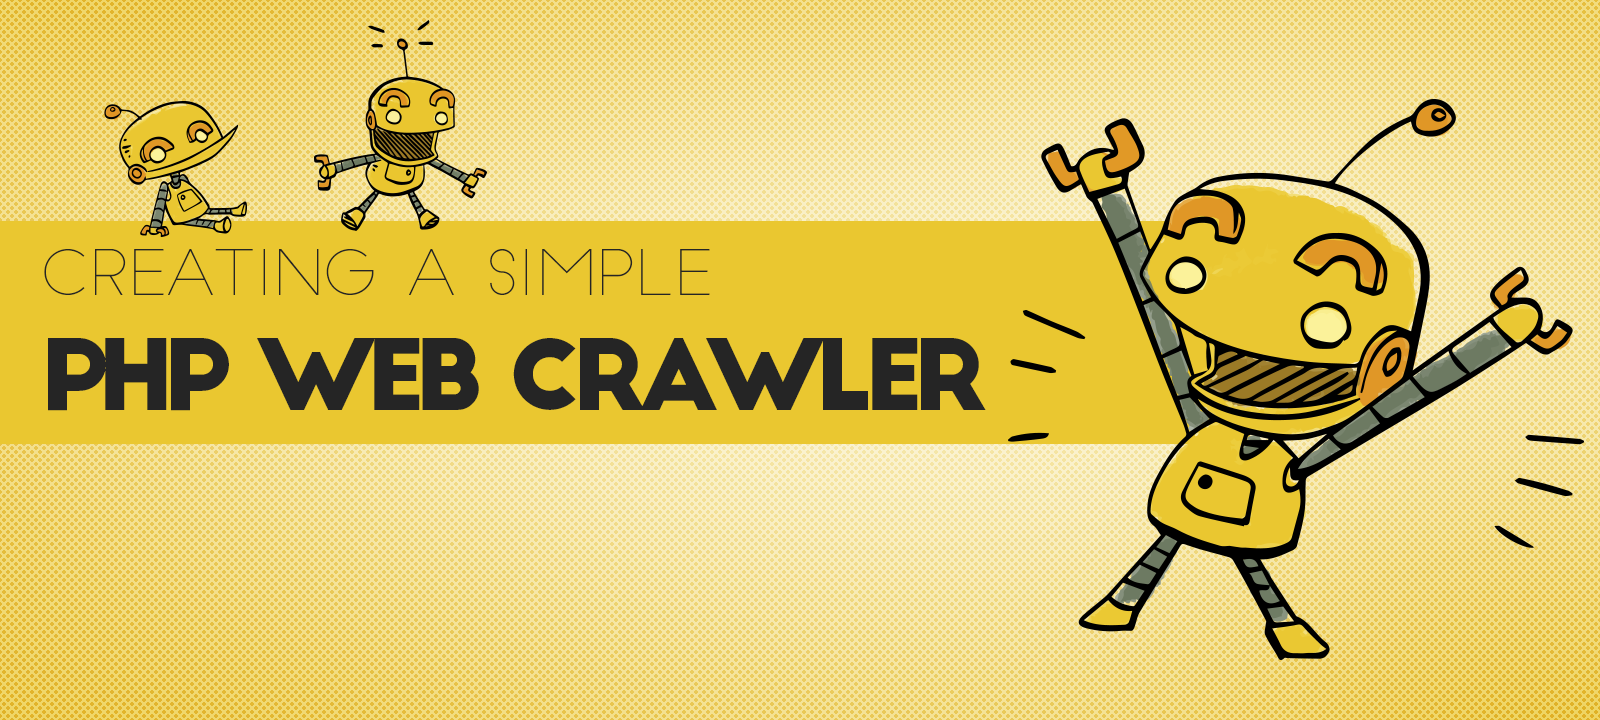 How to create a simple PHP web crawler to download a website